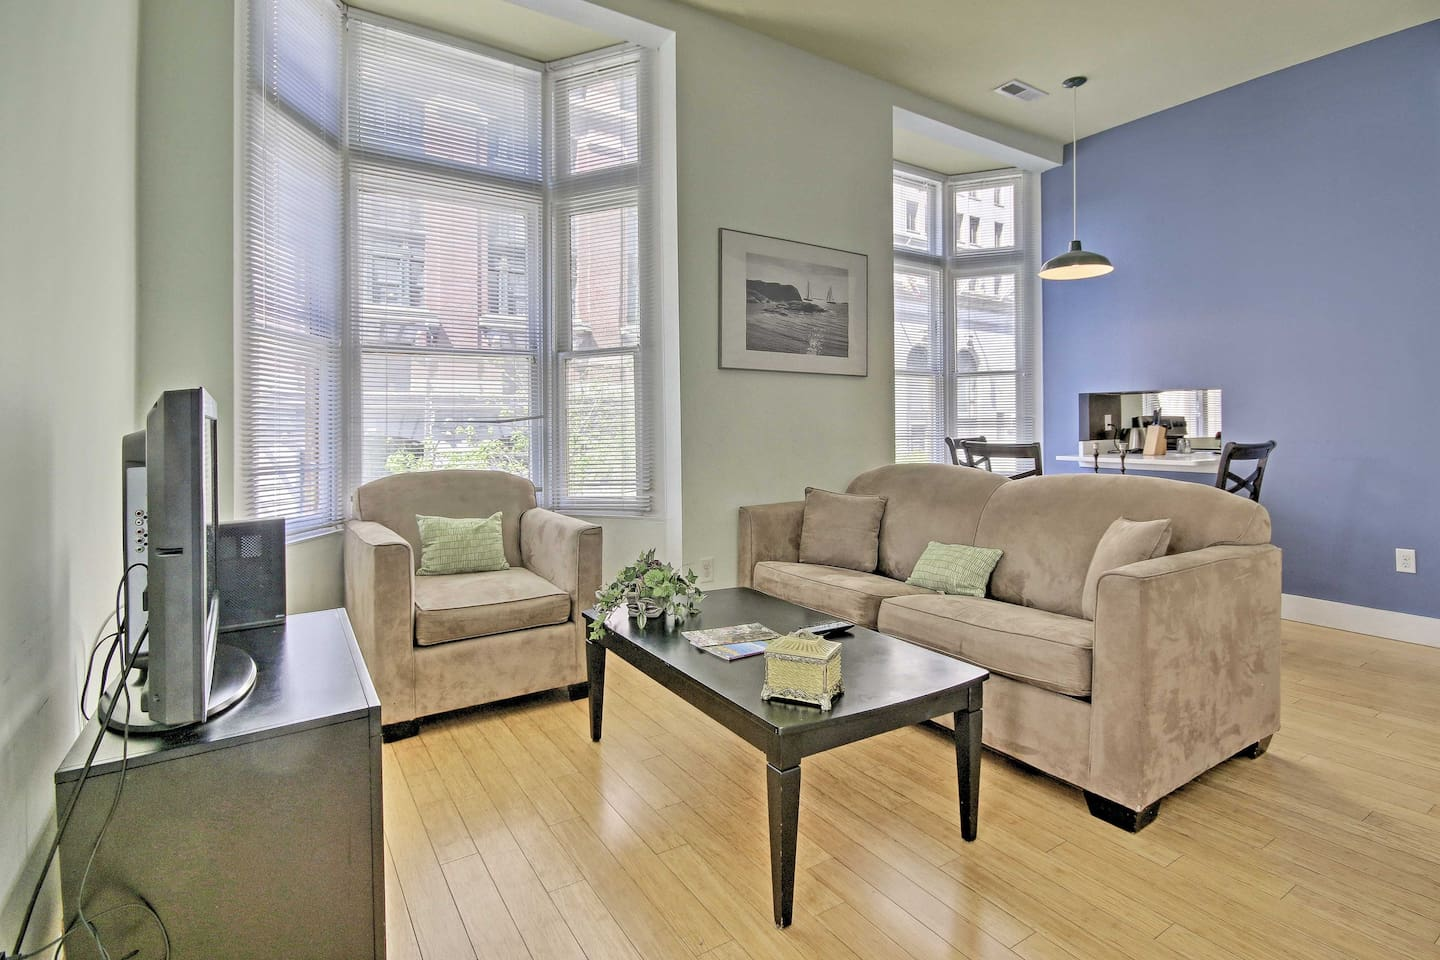 Explore the seaport city of Baltimore from this spacious vacation rental!